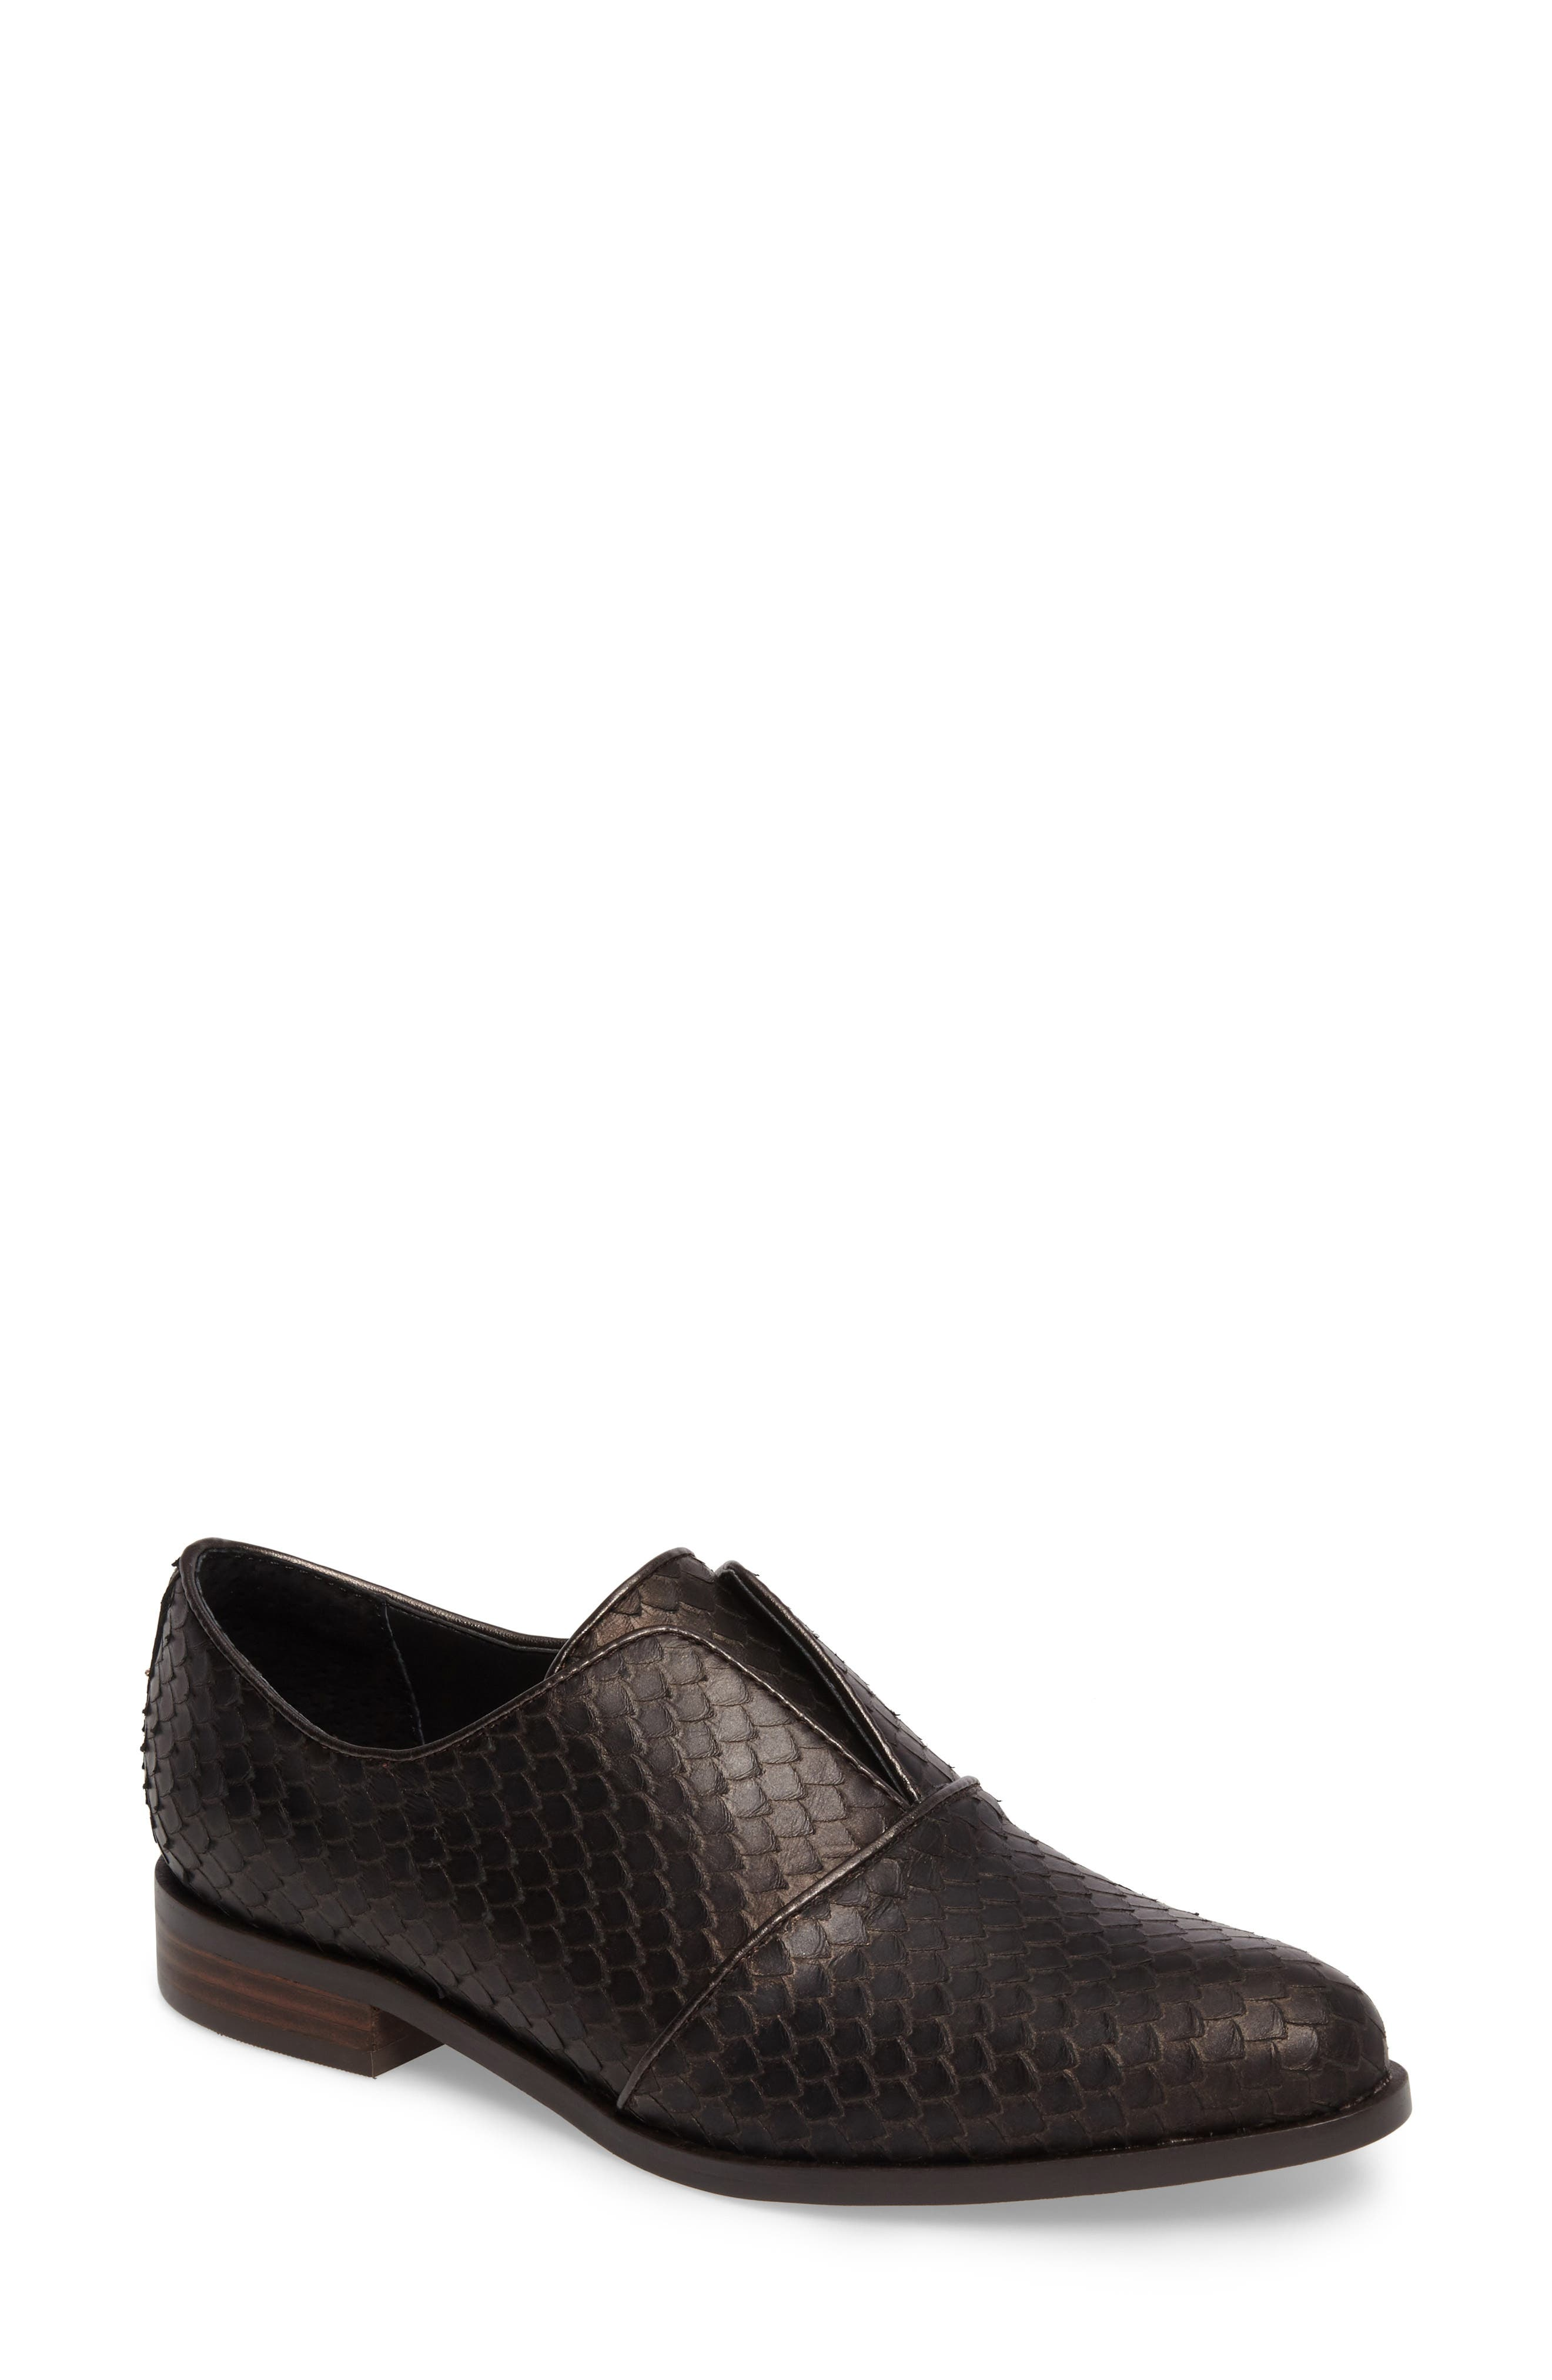 Isola Maria Slip-On Oxford,                         Main,                         color, T. MORO BROWN LEATHER